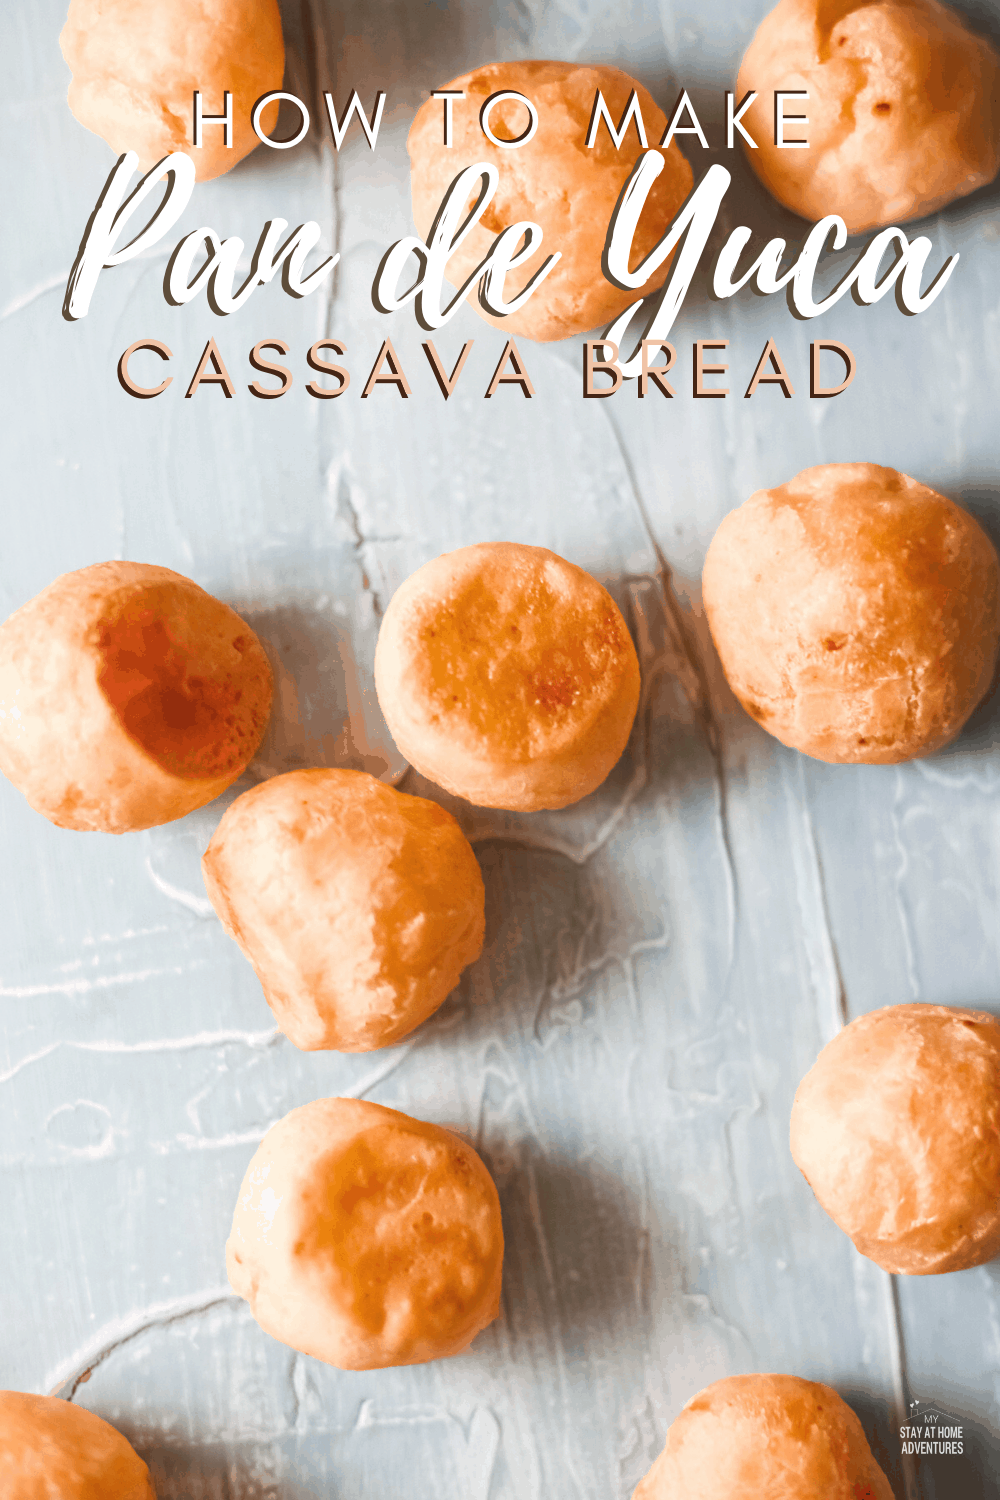 Pan de Yuca is the traditional Colombian recipe. It's similar (but not the same) to Brazilian Pao de Queijo. The texture is a bit different and it has less of a cheesy texture. #Colombianrecipe #yucabread #breadrecipe via @mystayathome